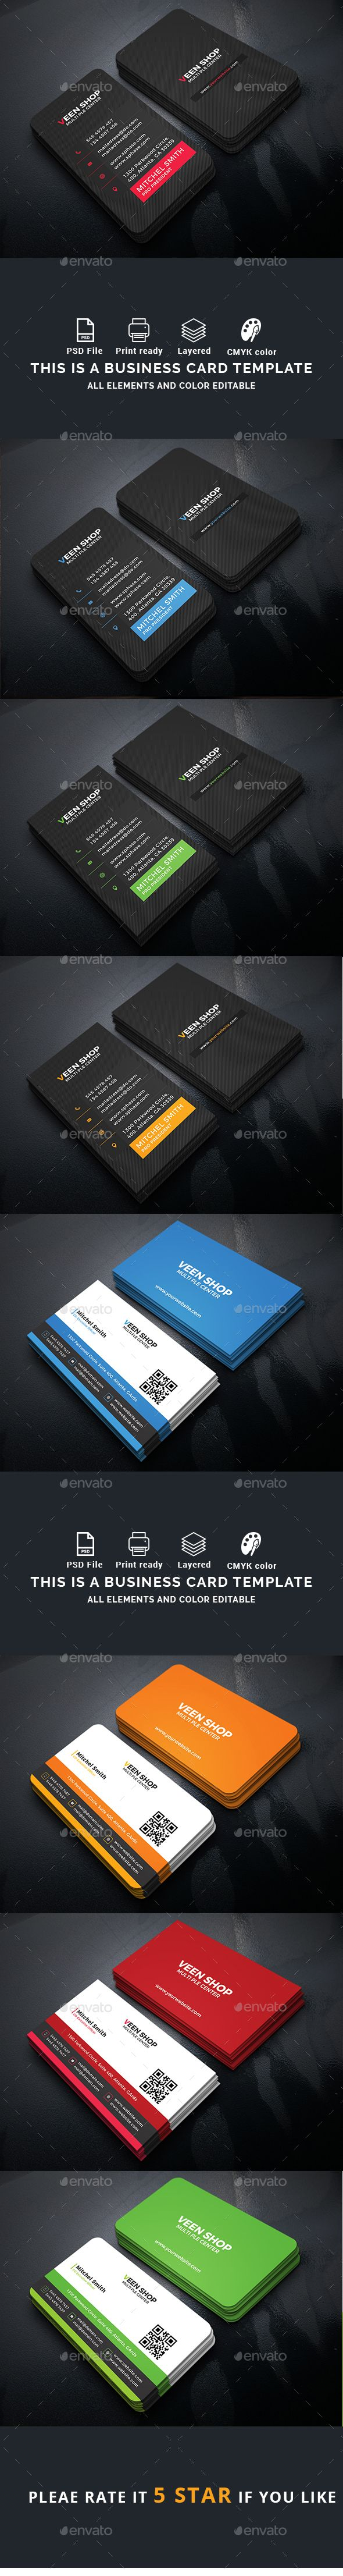 60 best Business Card Inspiration images on Pinterest | Business ...